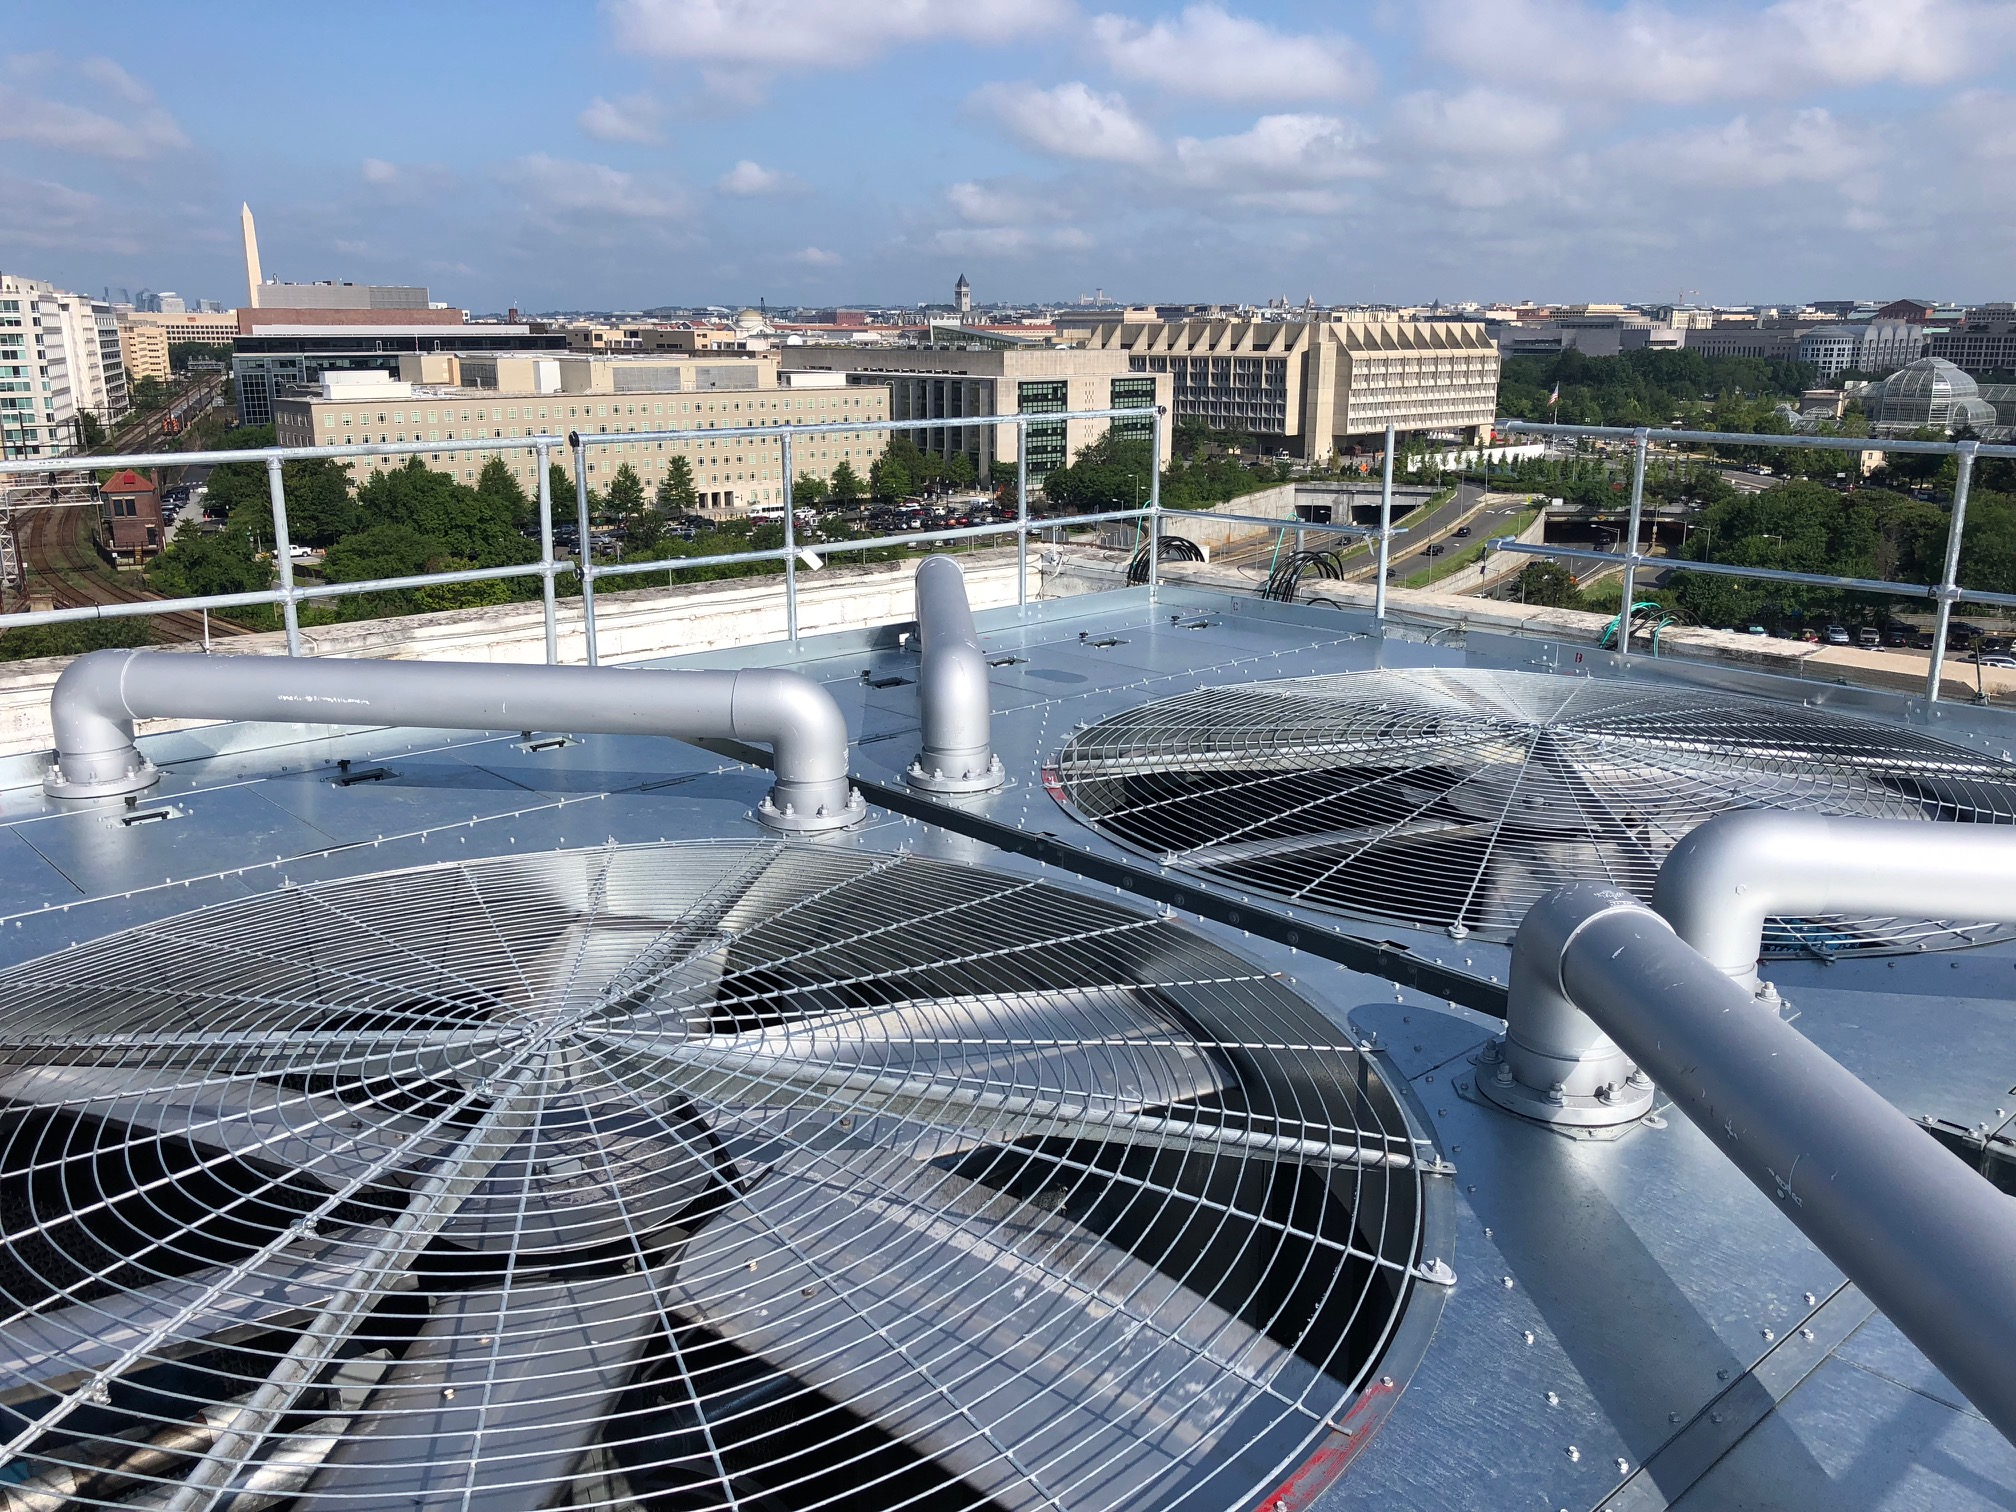 D.C. CRITICAL FACILITY COOLING TOWER REPLACEMENT